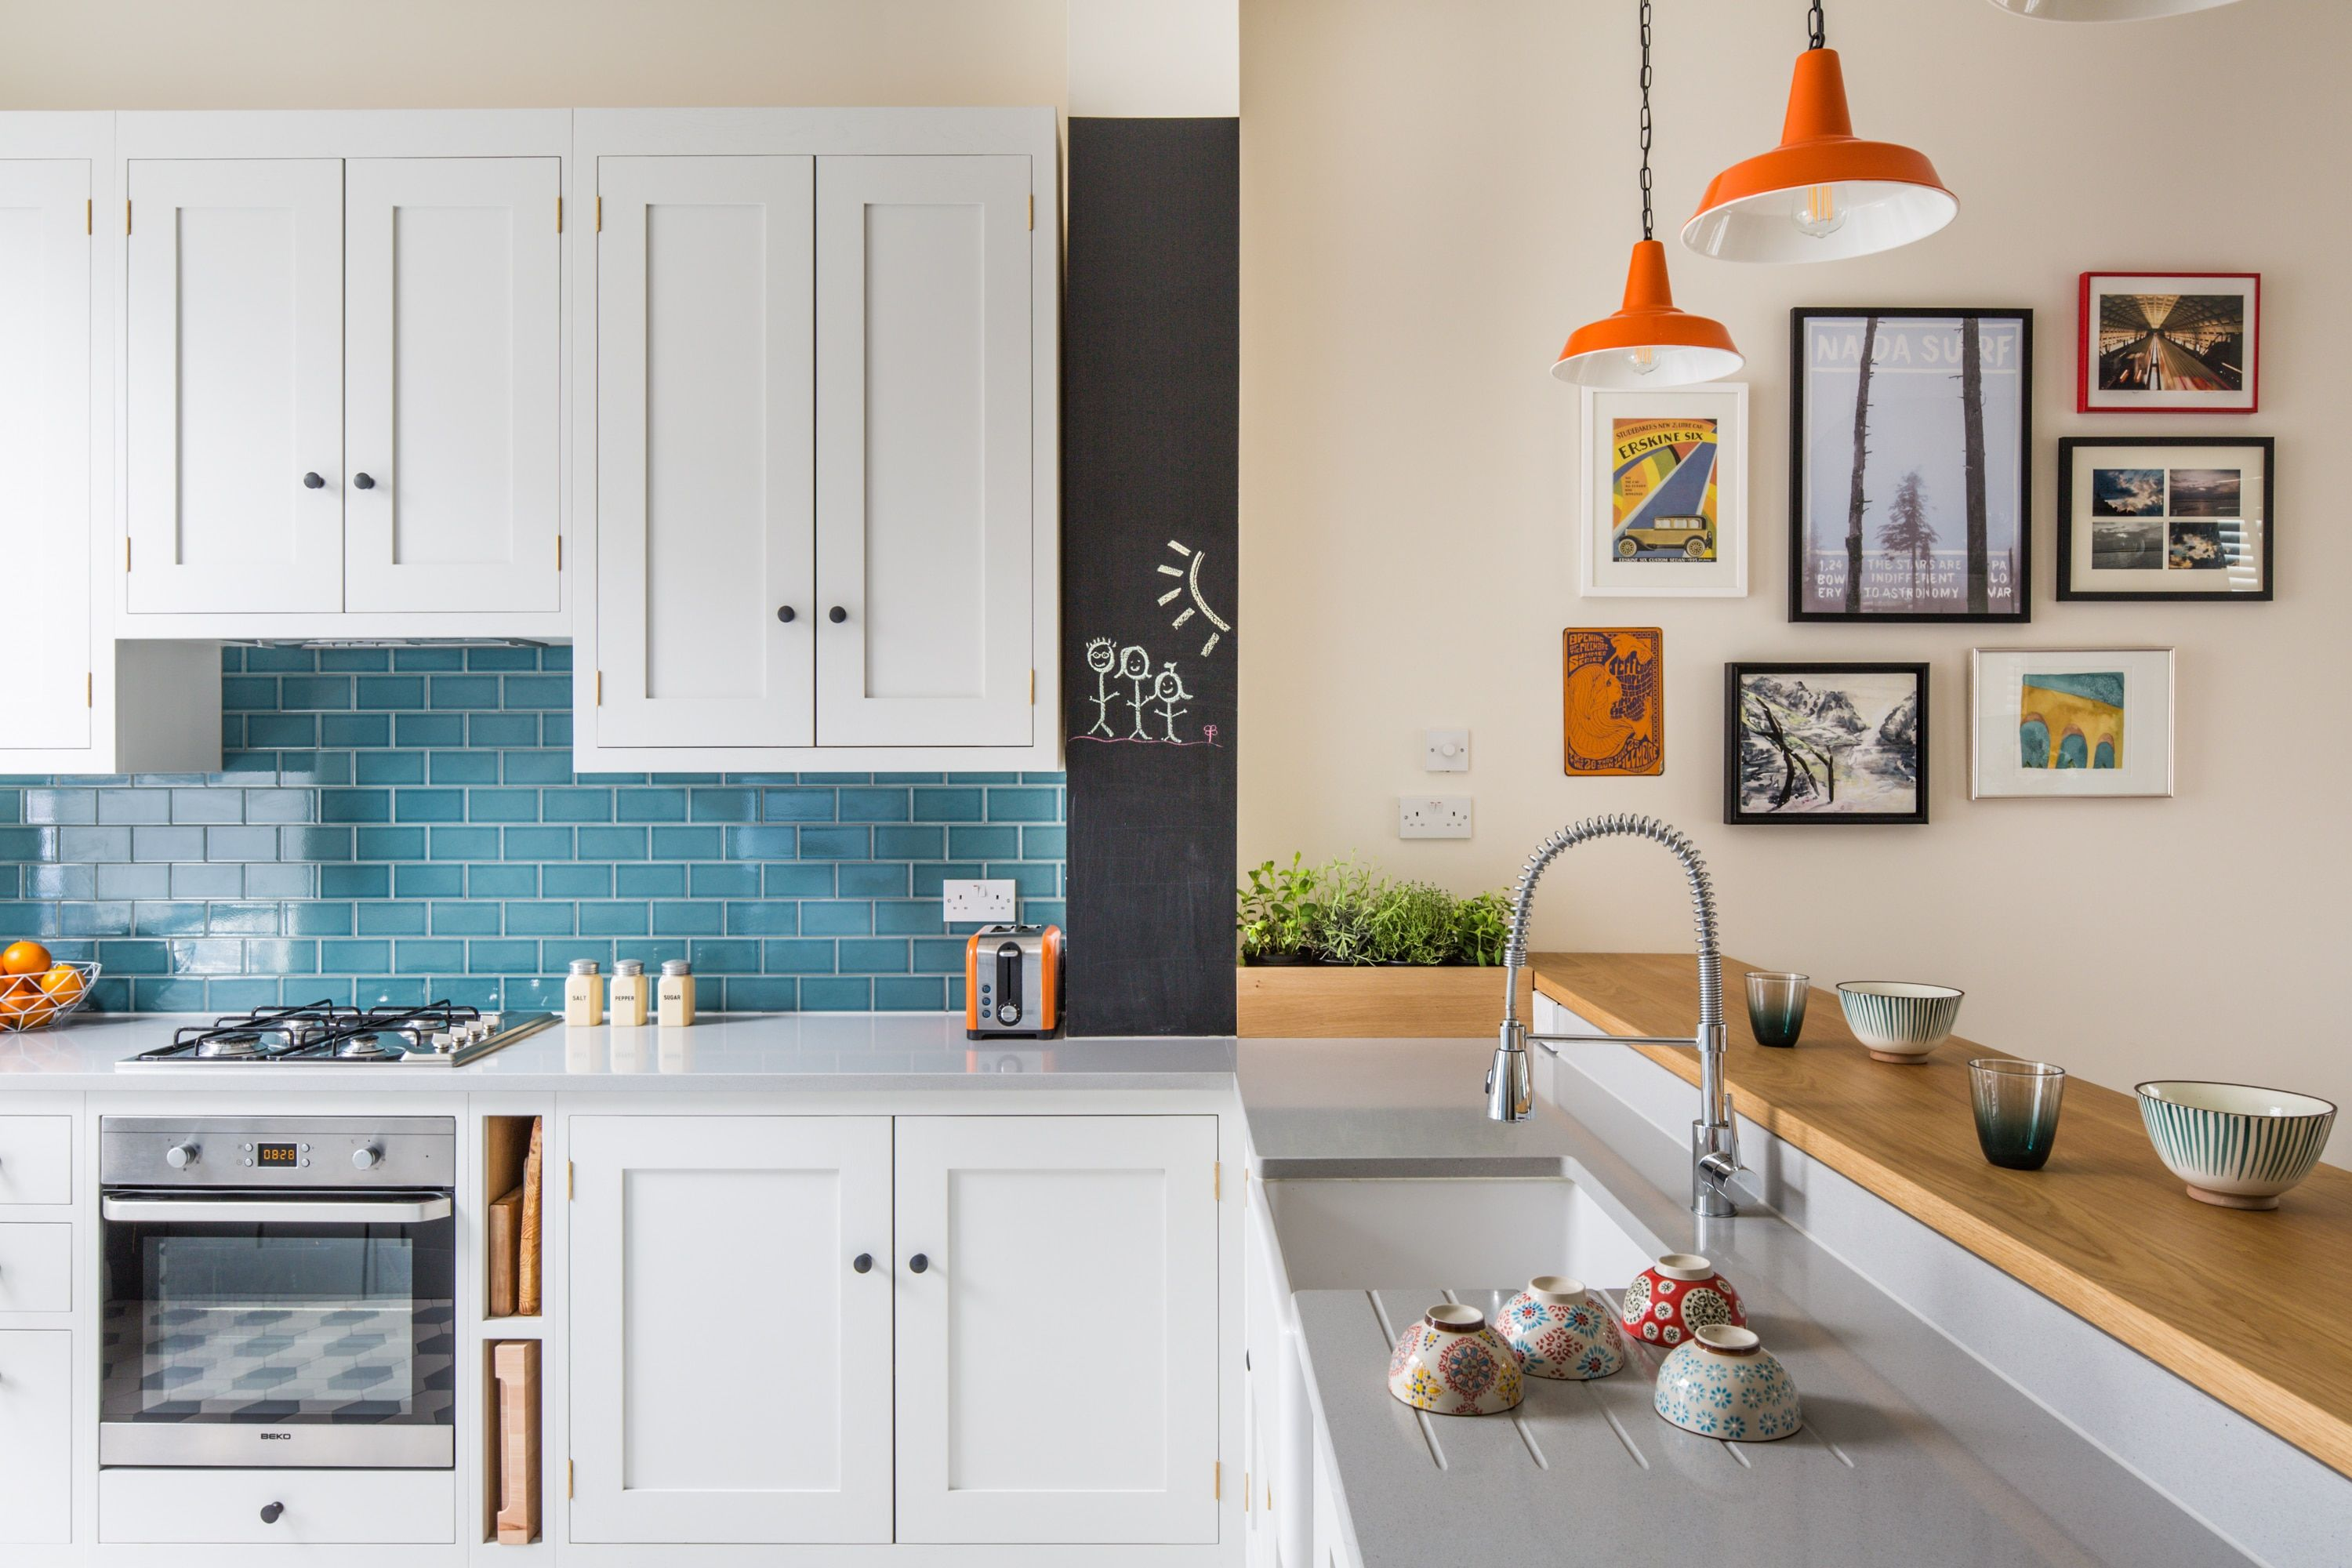 12 elegant l shaped kitchen design ideas quirky kitchen kitchen remodel shaker kitchen on kitchen ideas quirky id=58907